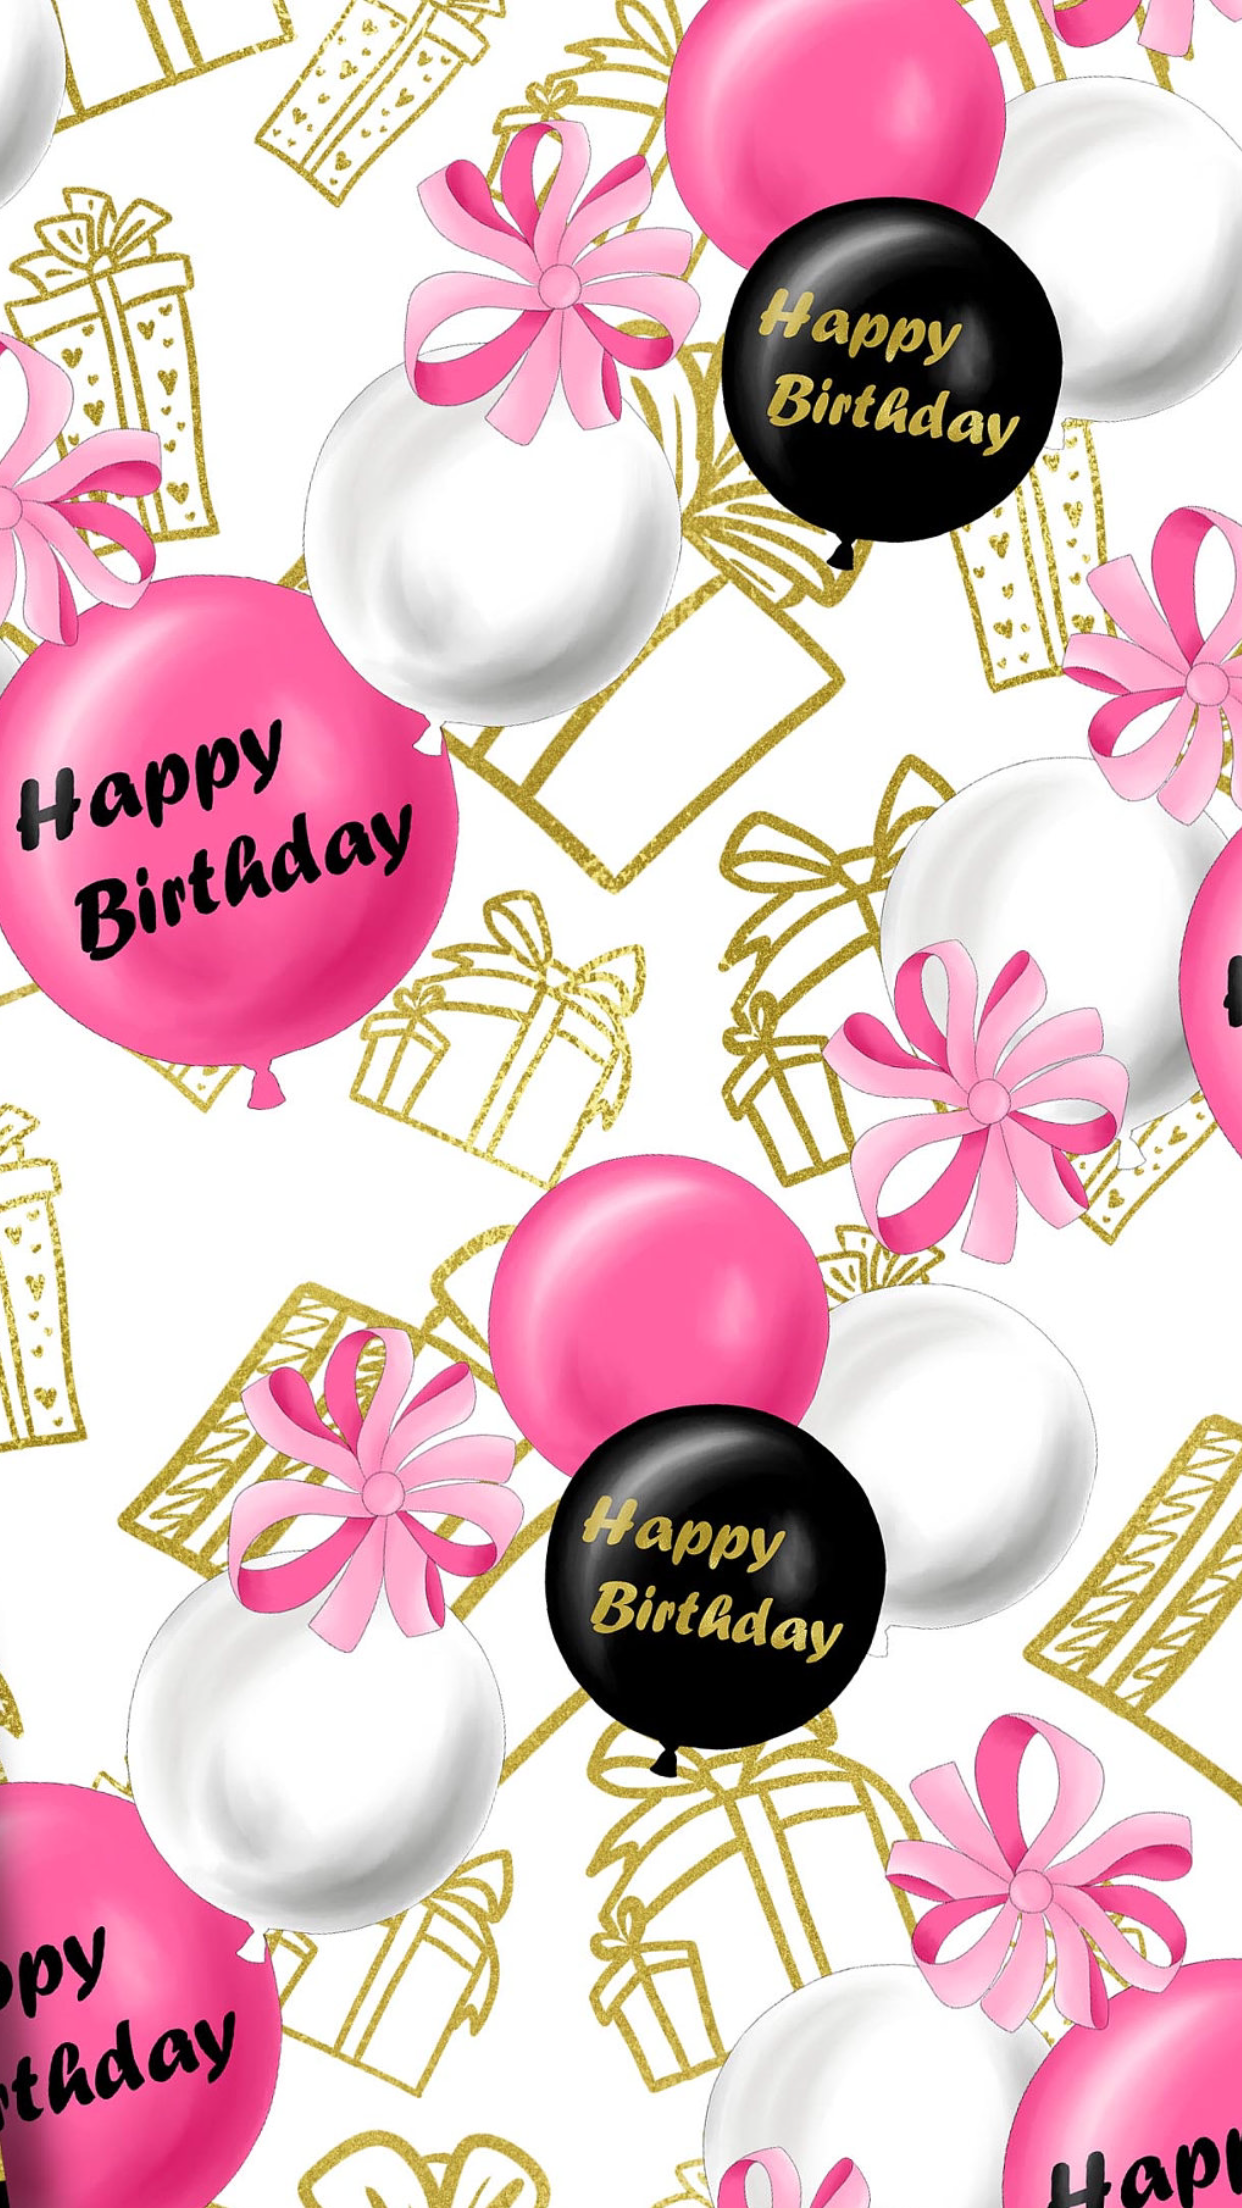 Wallpaper Happy Birthday Wishes Cards Happy Birthday Wallpaper Birthday Blast